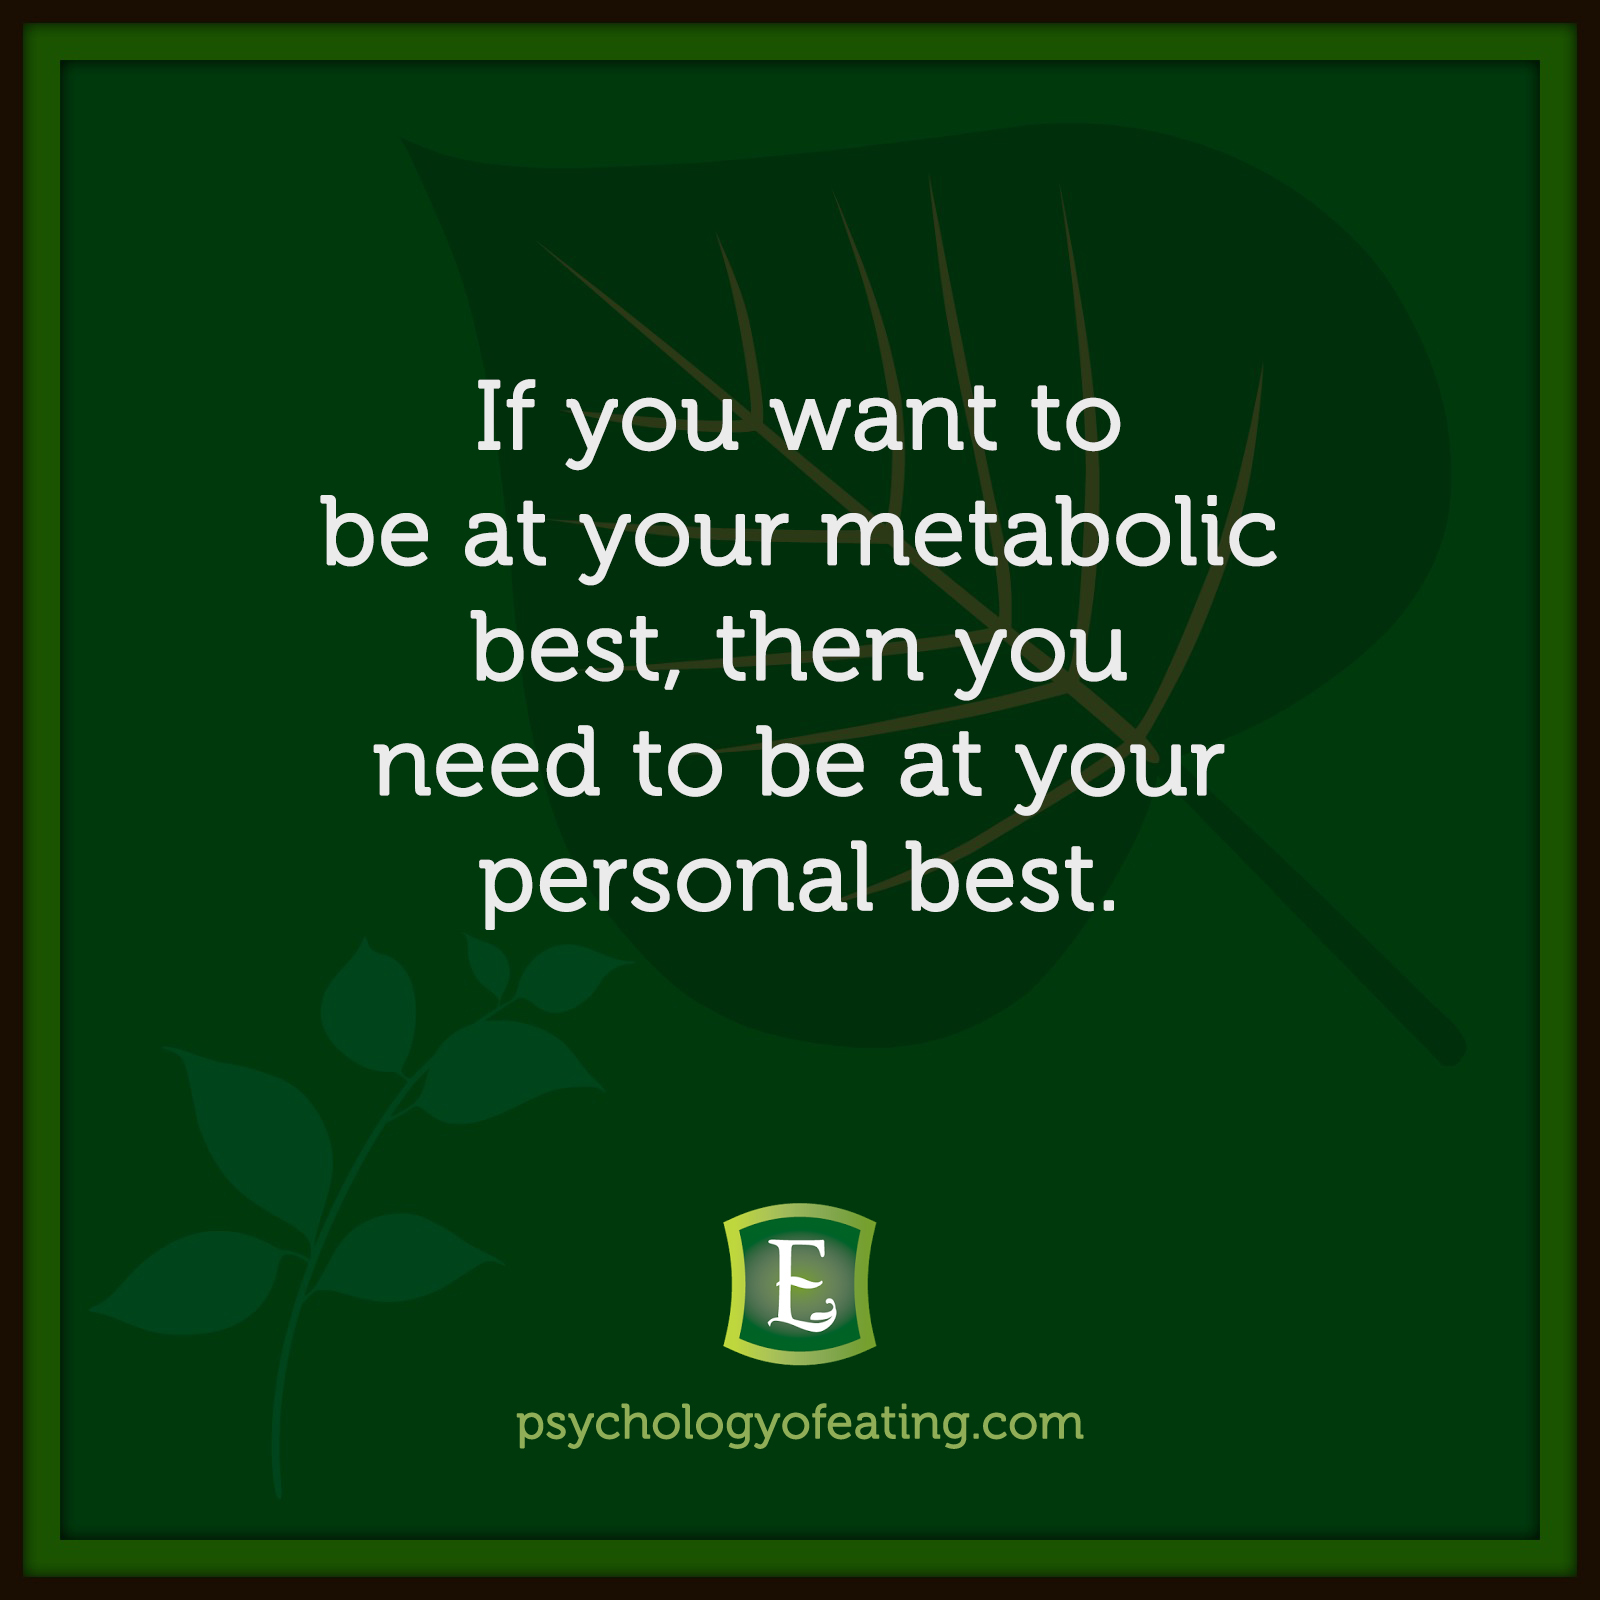 If you want to be at your metabolic best, then you need to be at your personal best #health #nutrition #eatingpsychology #IPE